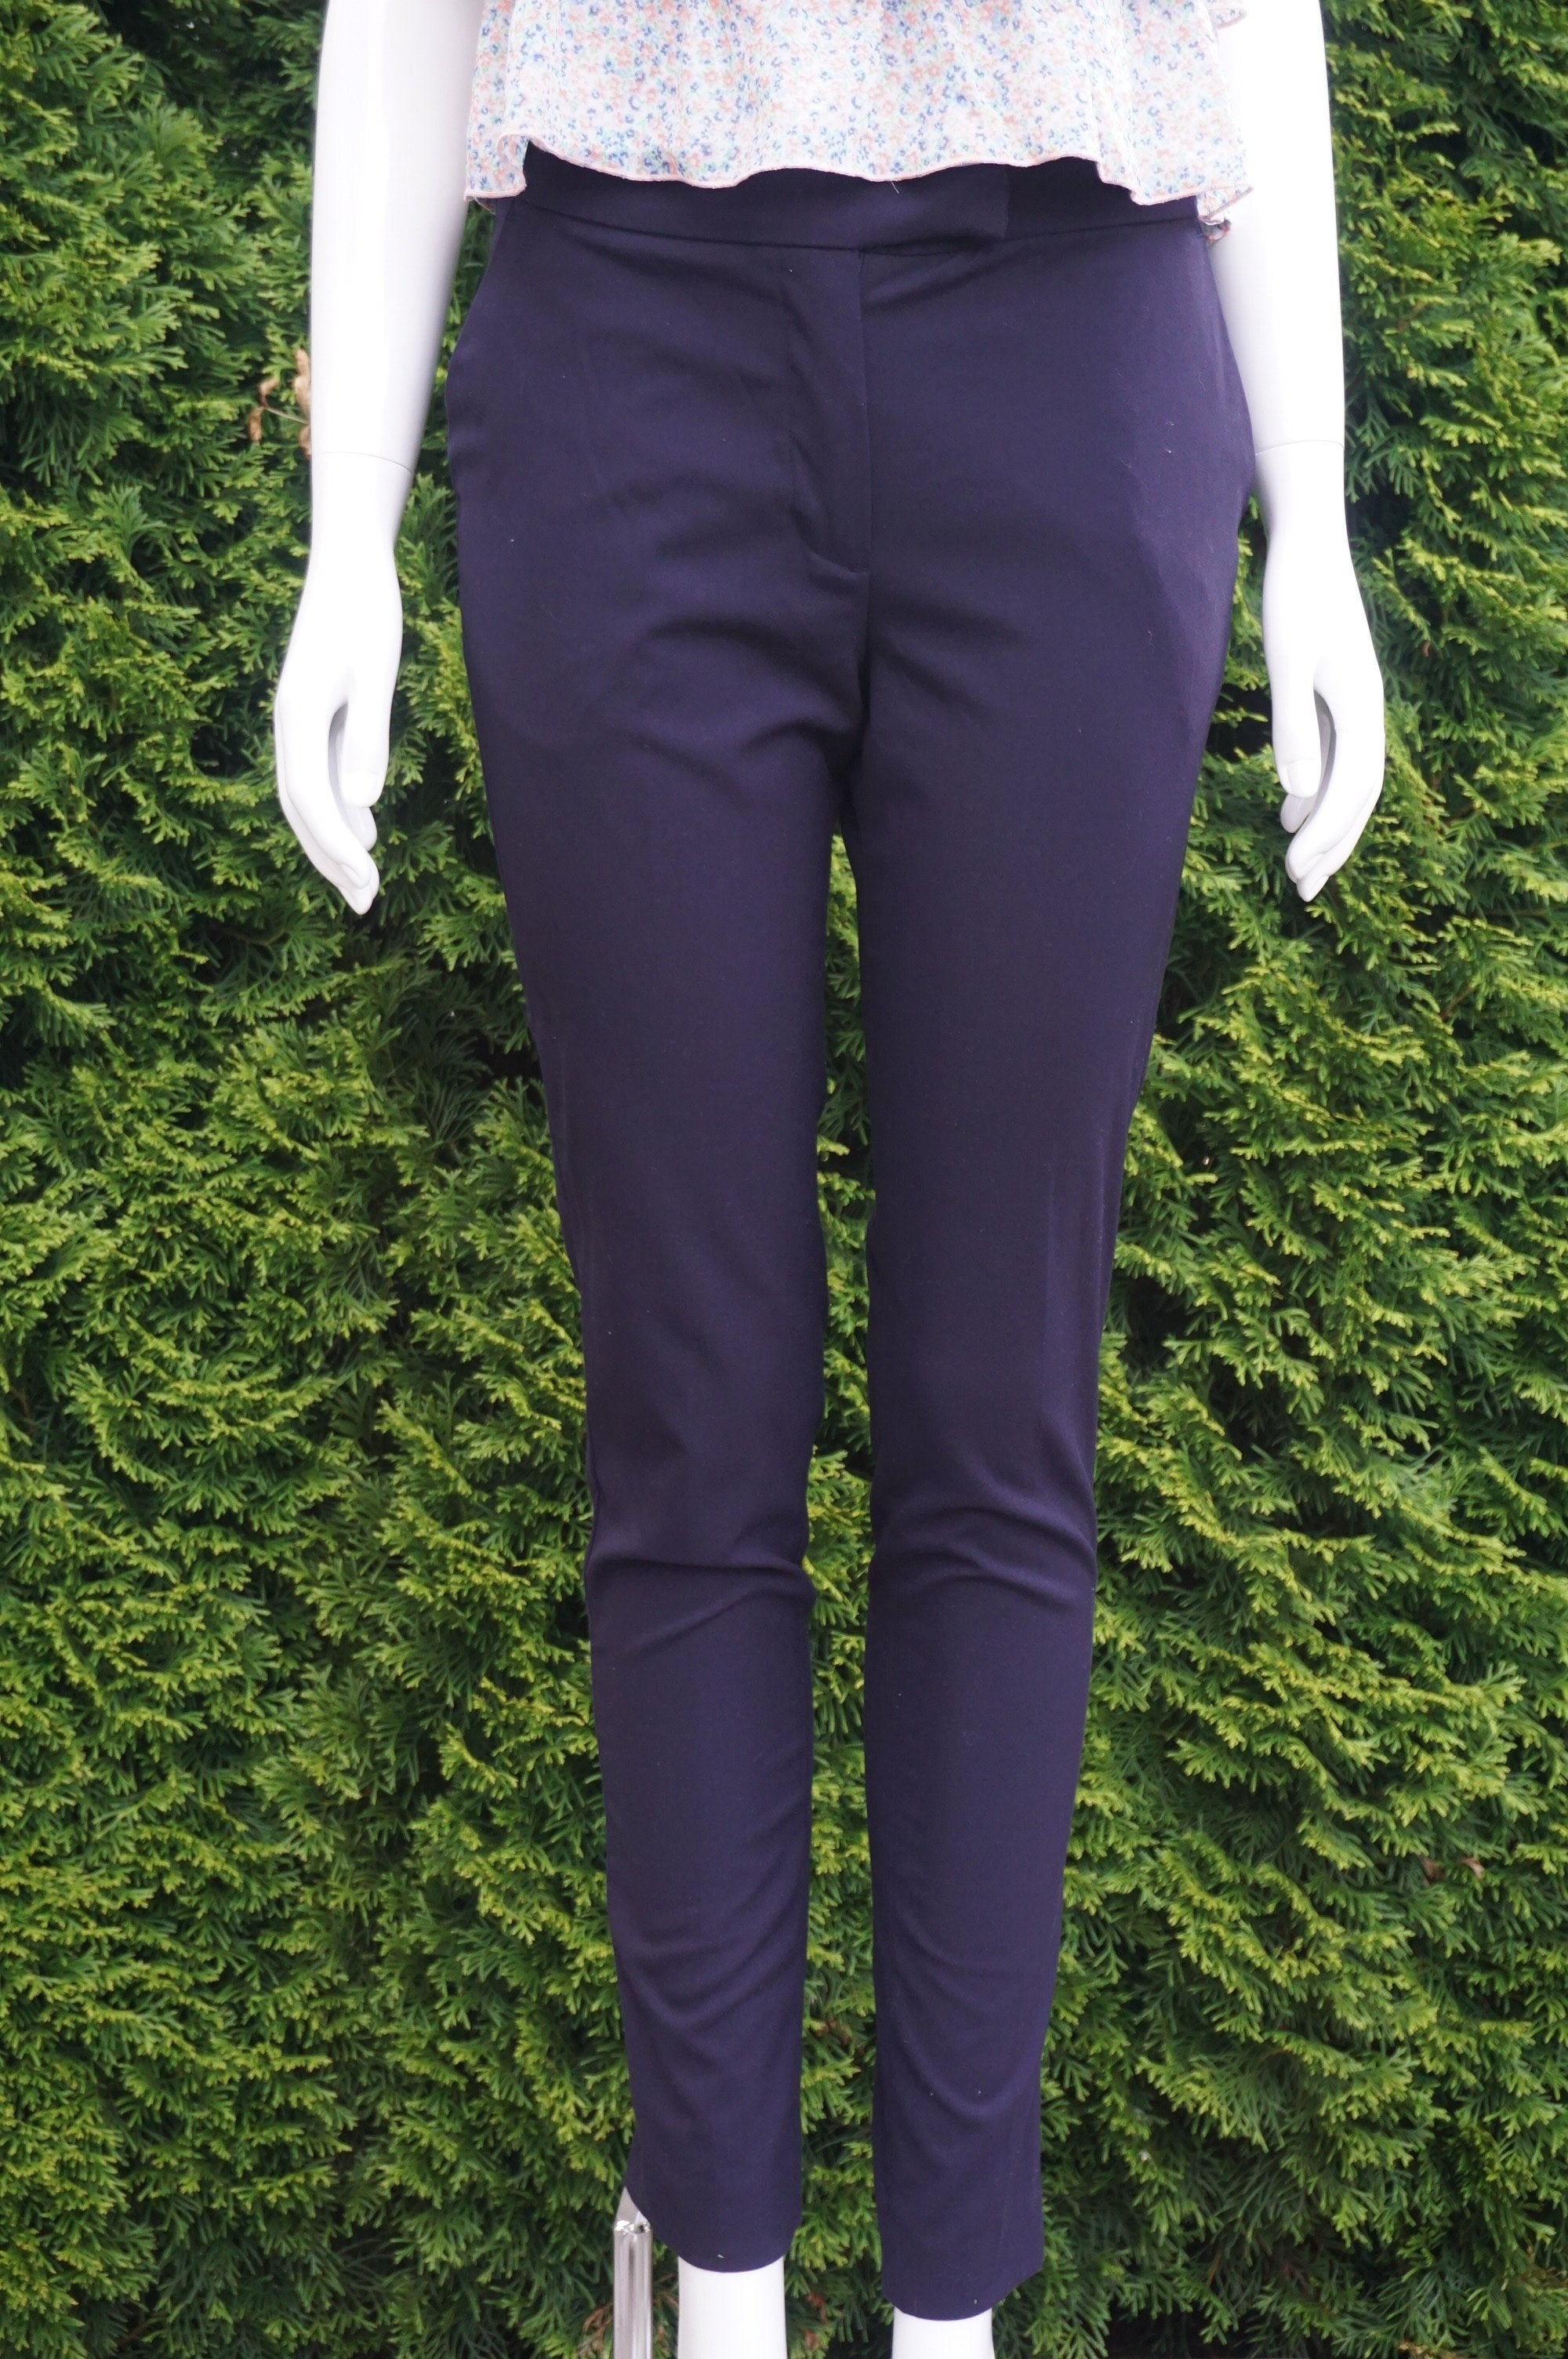 H&M Dark Blue Dress Pants, Waist measures 29 inches, length 38 inches, inseam 29 inches., Blue, 63% Polyester, 33% viscose, 4% Elastane, women's Pants, women's Blue Pants, H&M women's Pants,